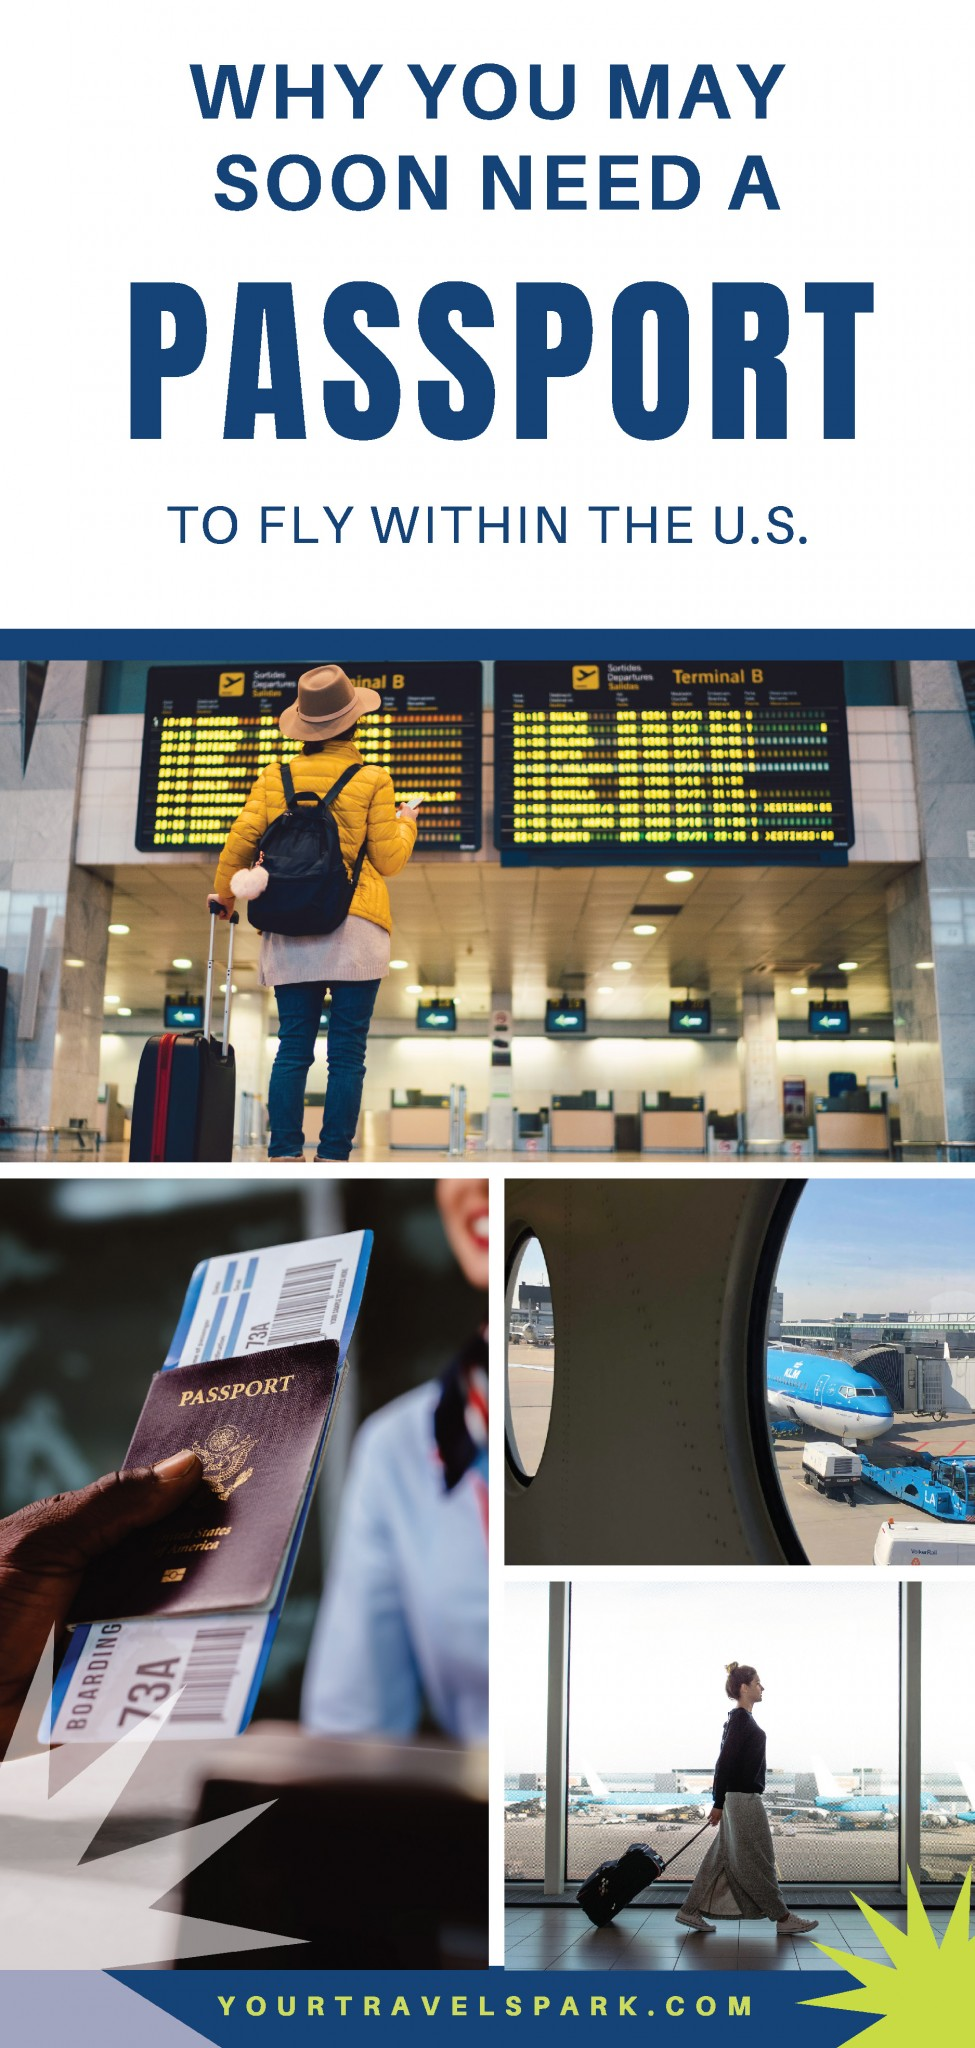 Residents in 11 U.S. states will need a passport for all flight and travel within the United States flights because of the Real ID Act — 11 states are currently not in compliance with the Real ID Act. #realidact #travel2019 #travel #unitedstatestravel #ustravel #unitedstates #passport #uspassport #unitedstatespassport #usflights #unitedstatesflights #usflight #unitedstatesflight #passporttravel #roadtrip